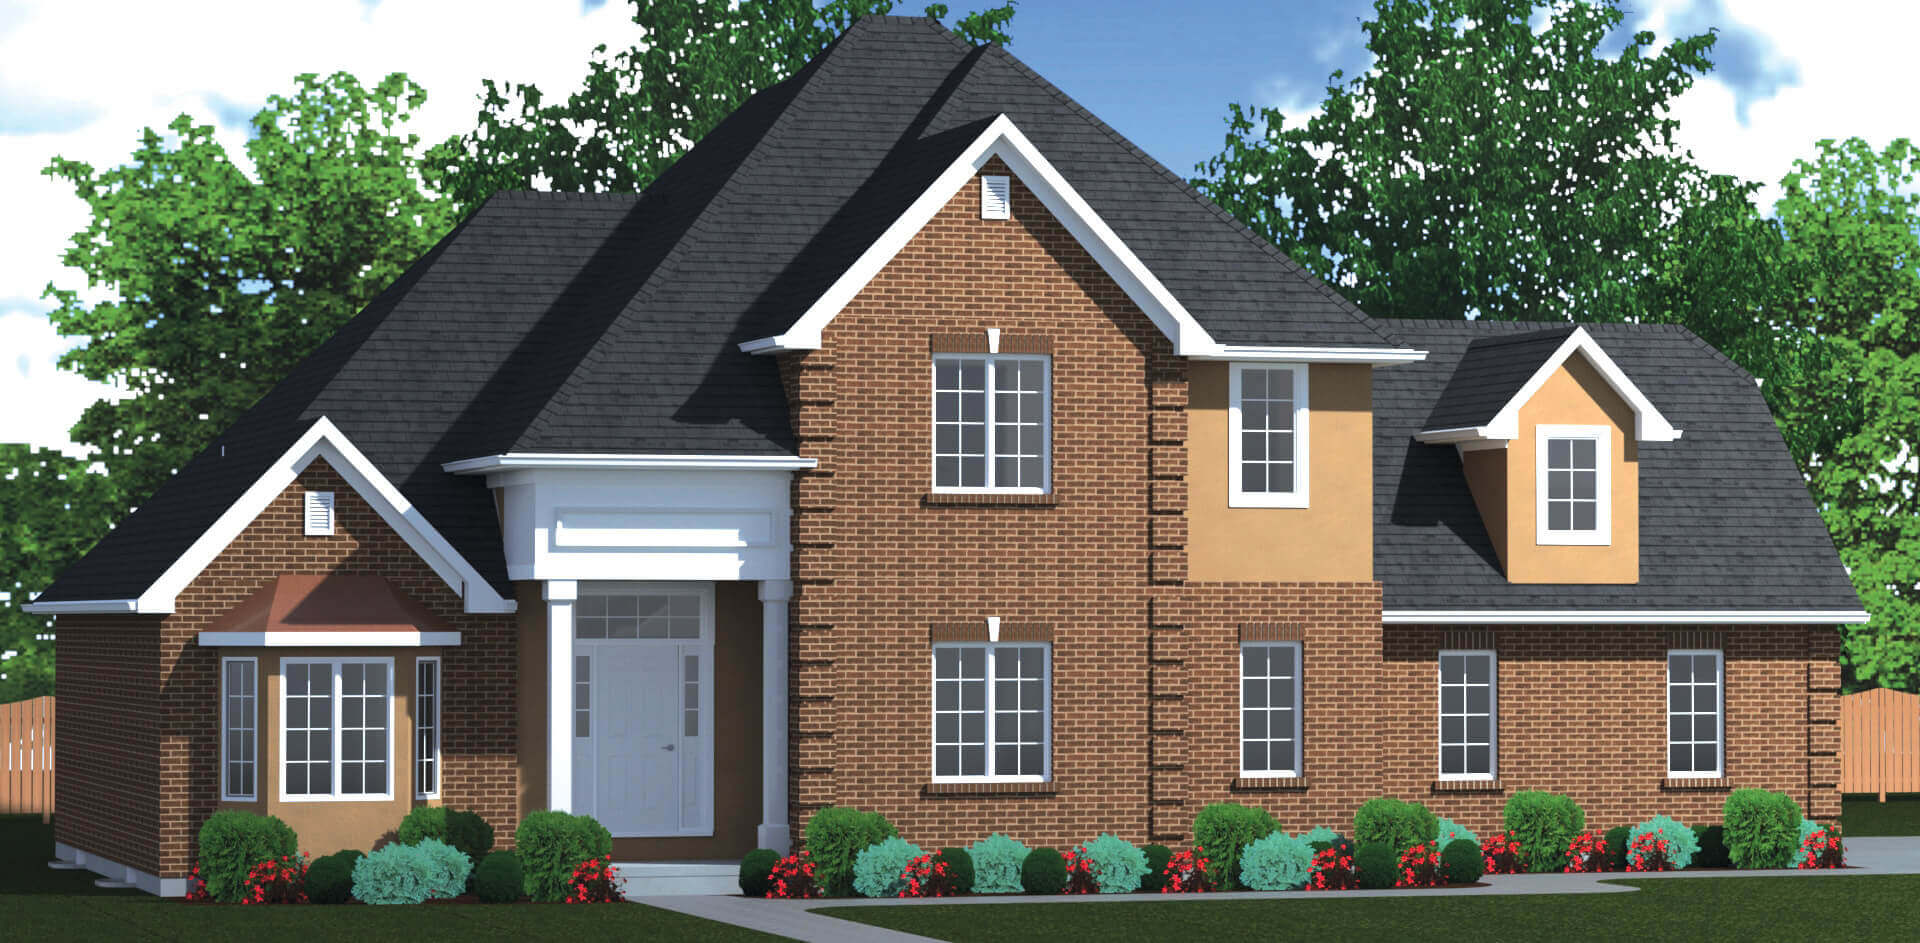 2692 sq.ft. timber mart house 3 bed 2.5 bath exterior render